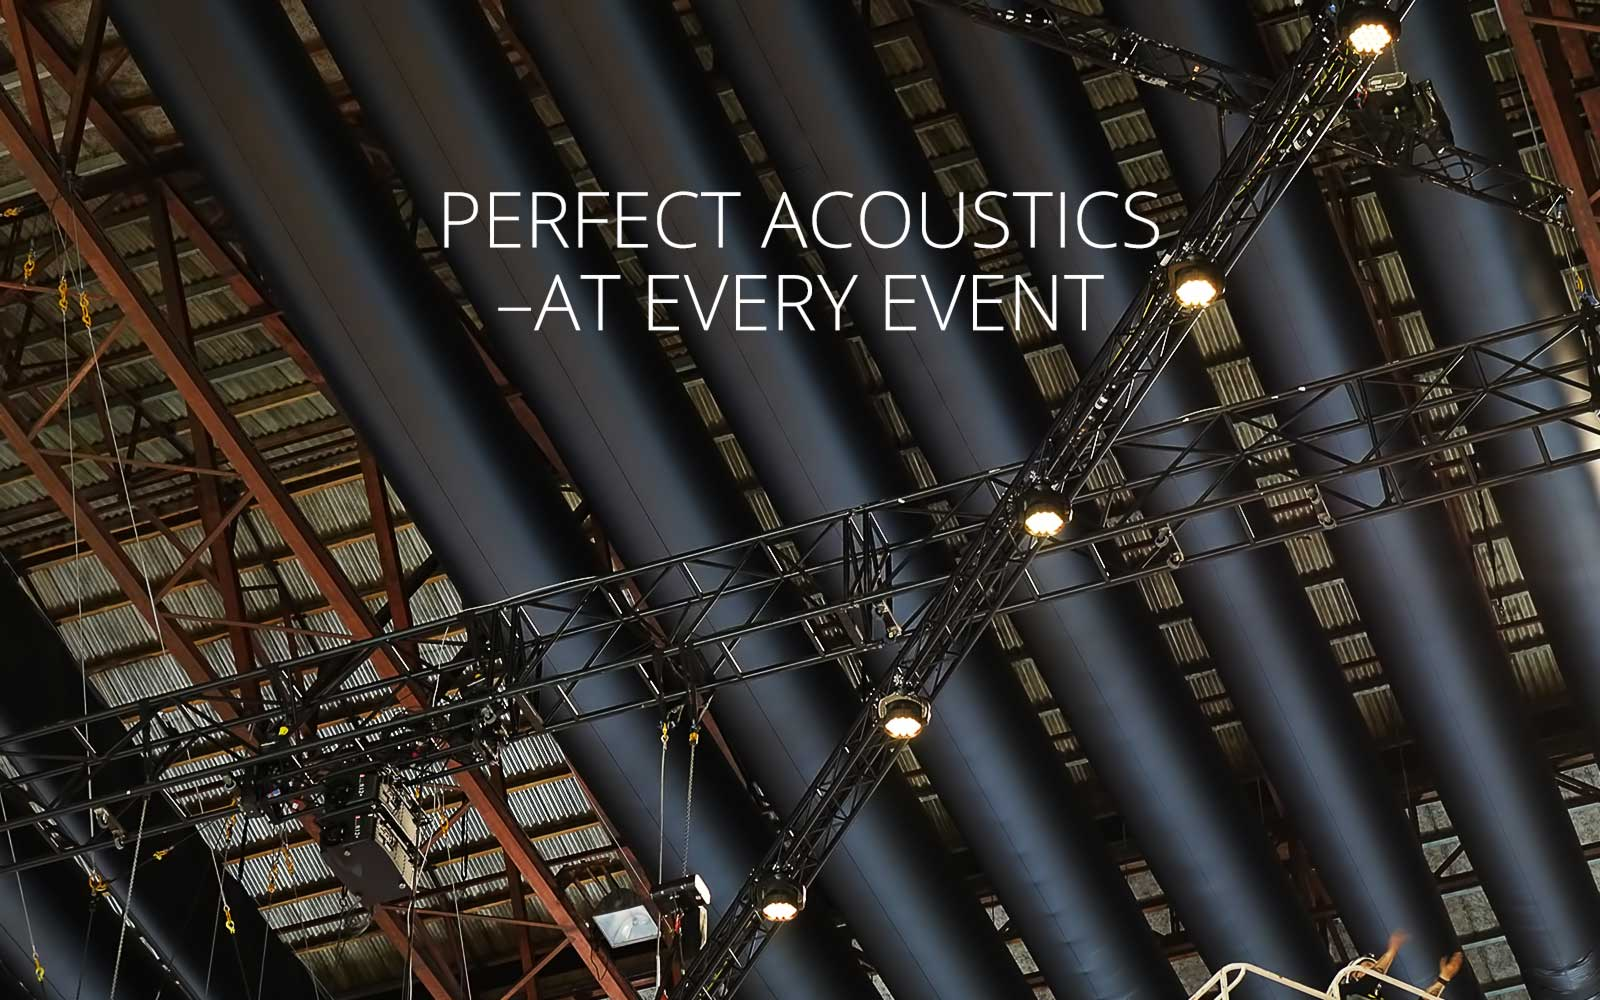 Variable Acoustics - perfect acoustics at every event